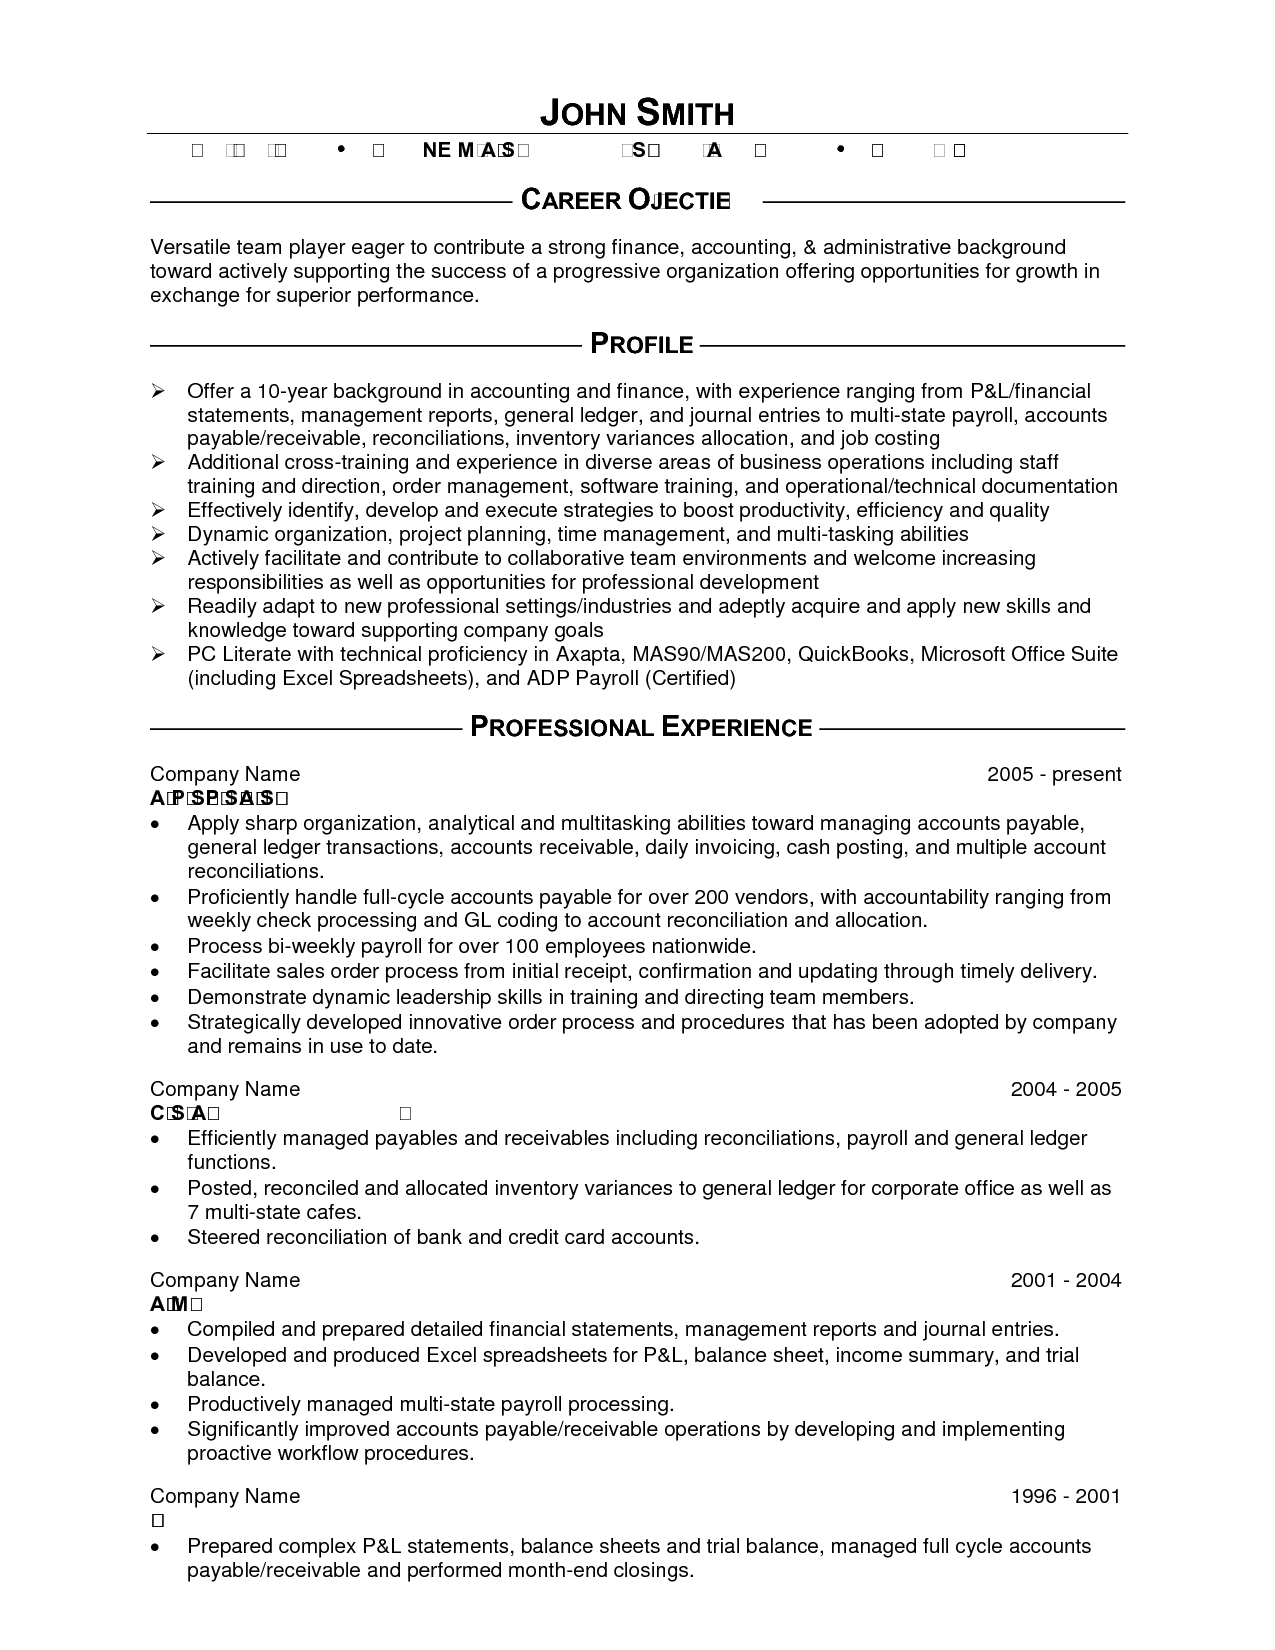 Explore Job Resume Examples, Resume Tips, And More!  Objective Of A Resume